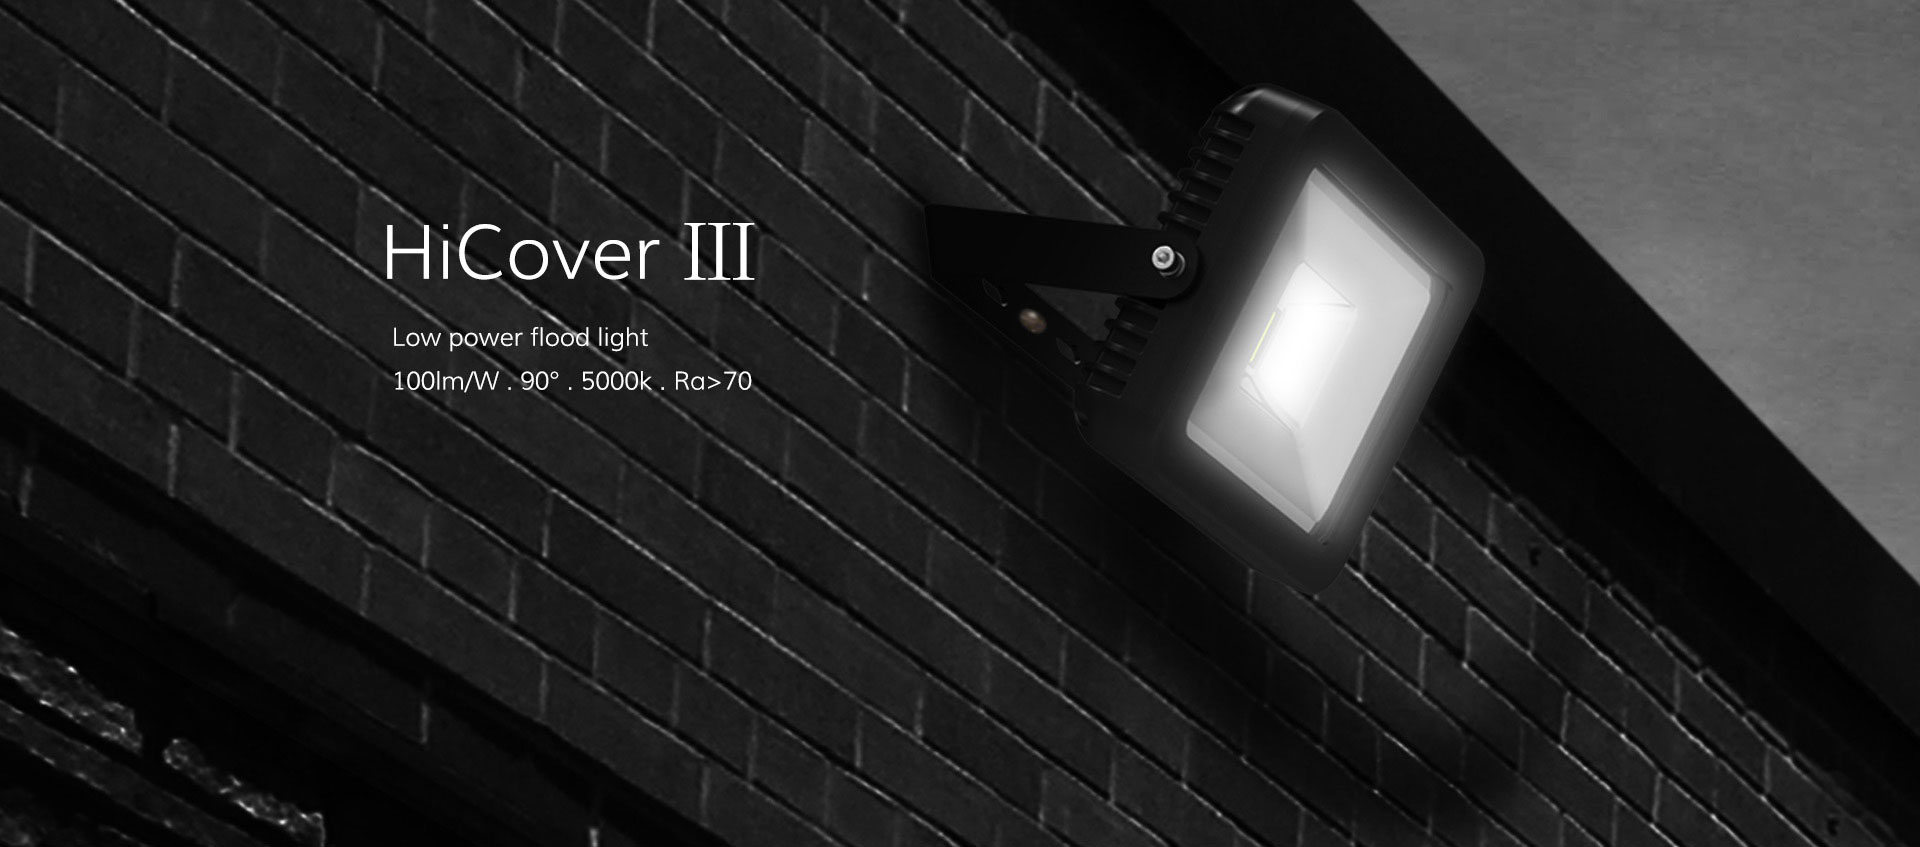 HiCover Ⅲ low power flood light